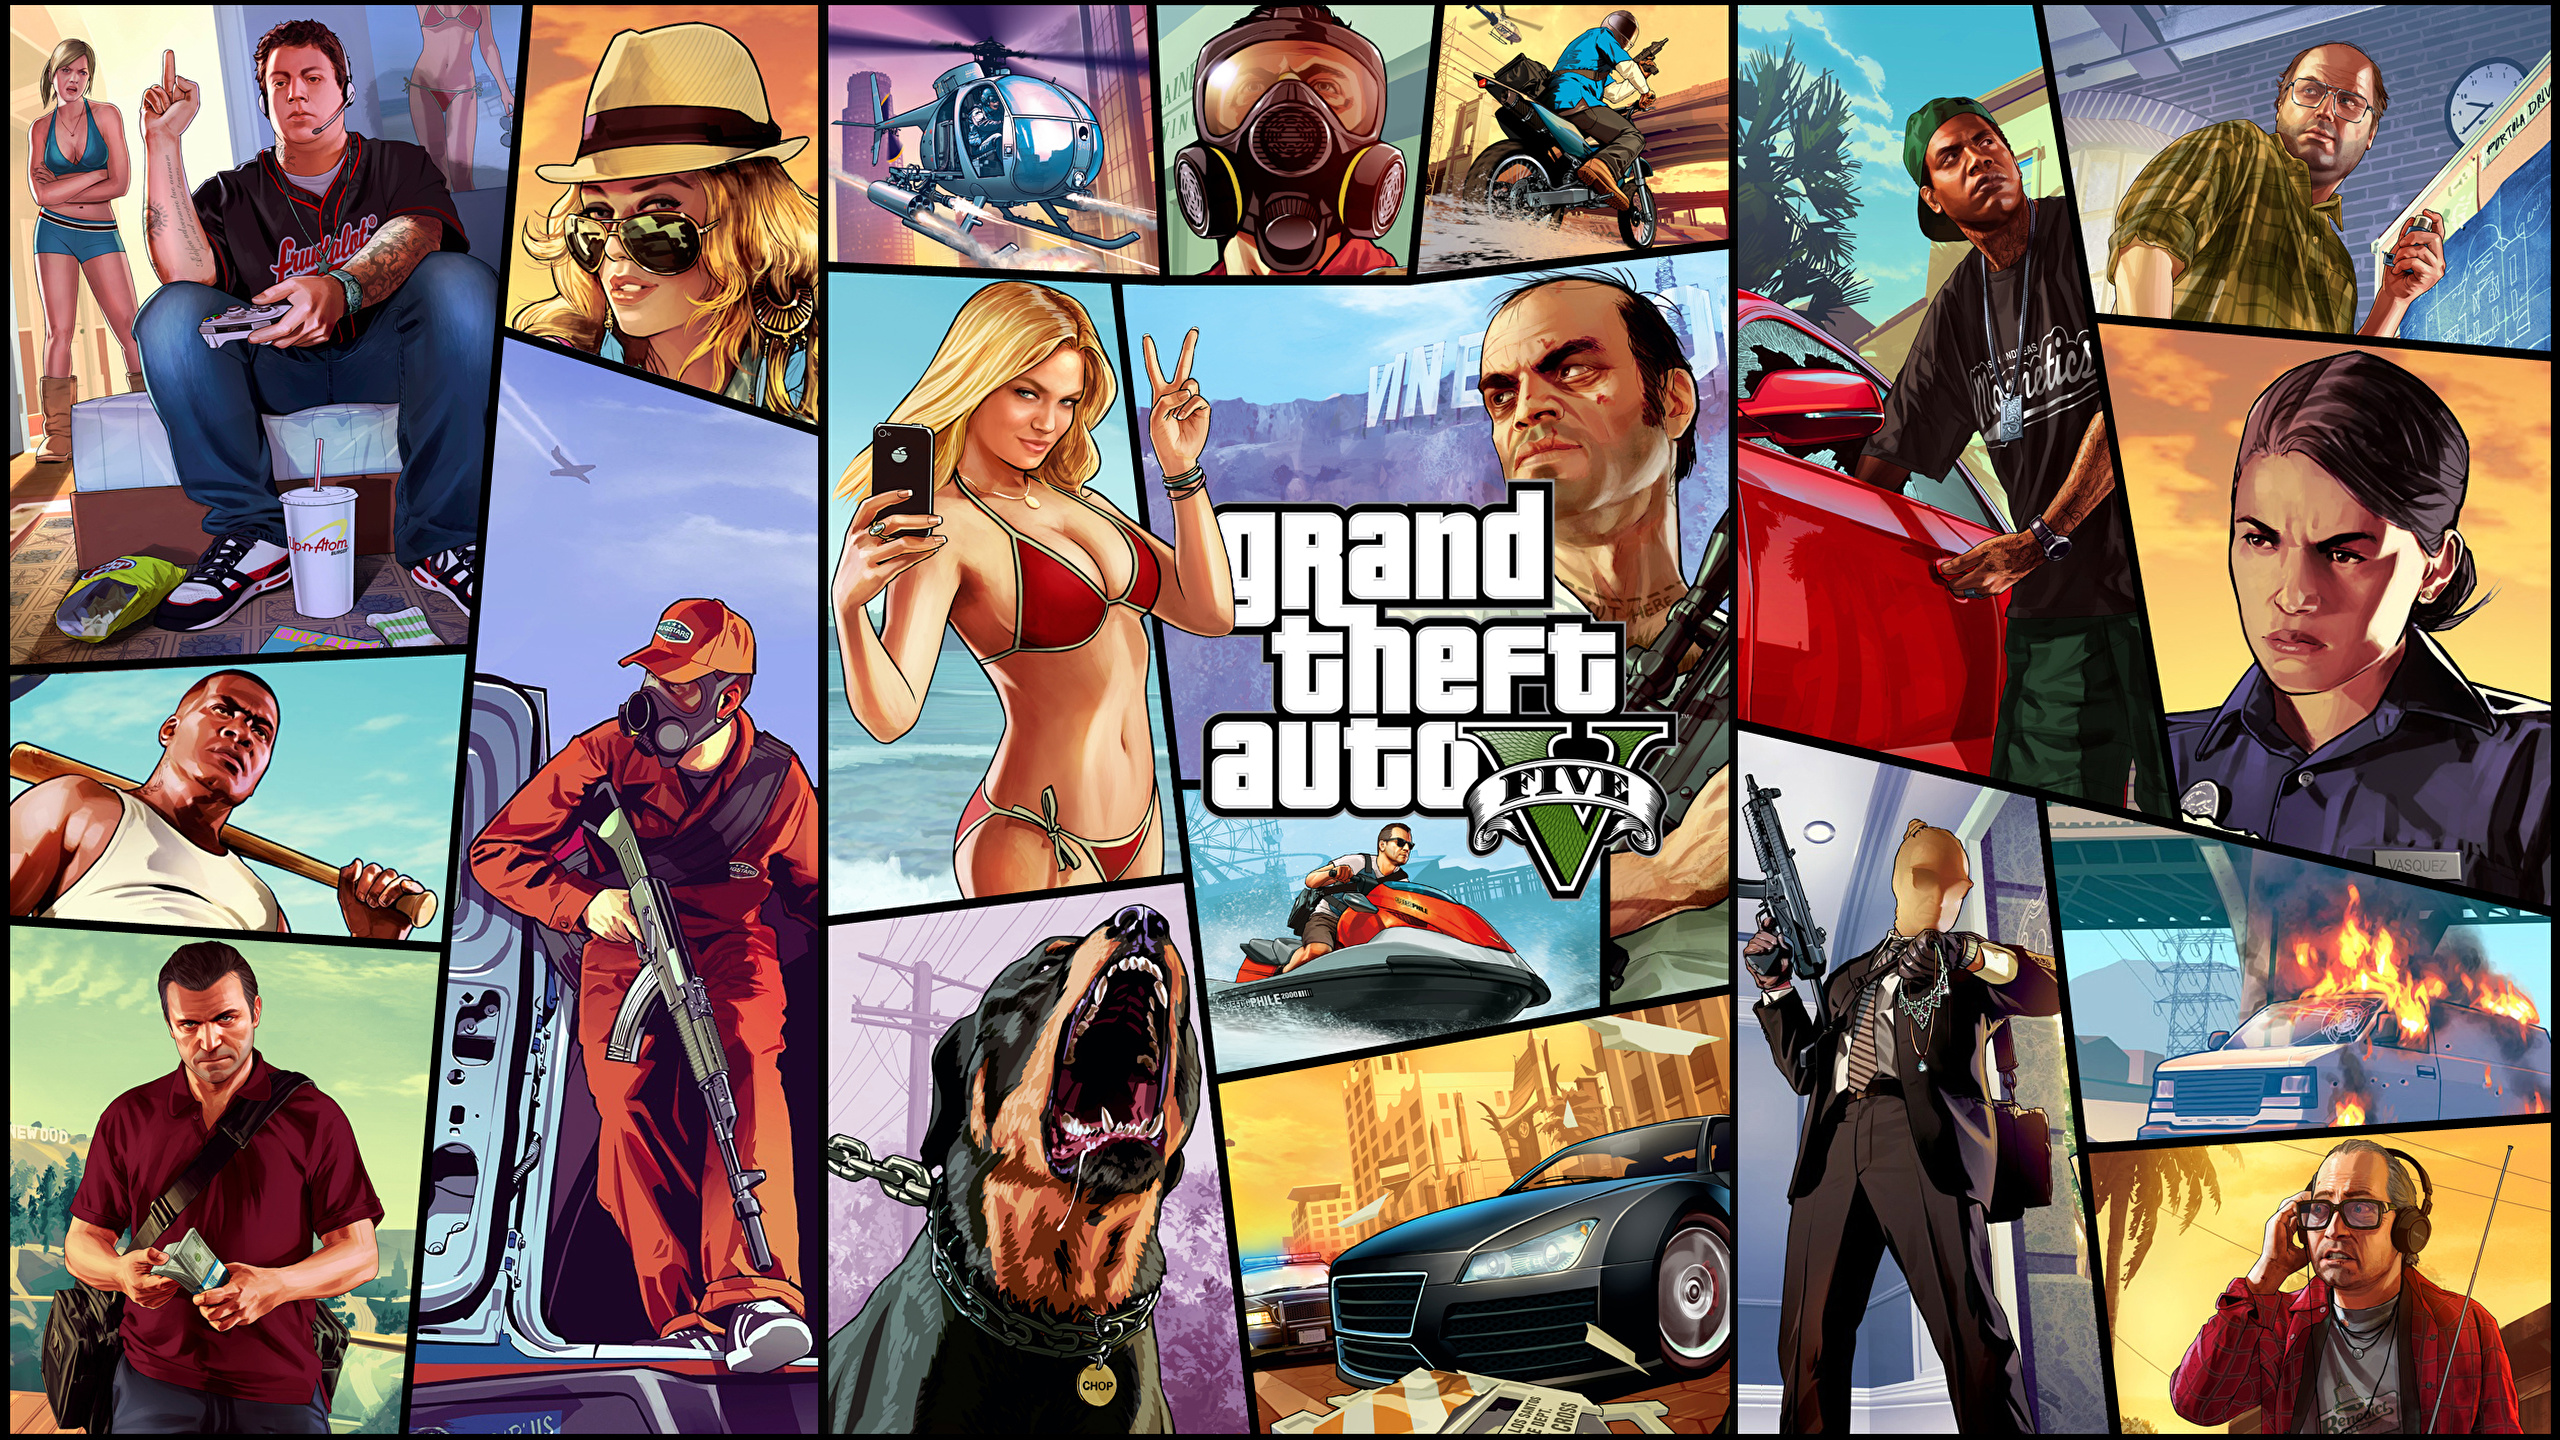 Picture GTA GTA 5 vdeo game Vector Graphics 2560x1440